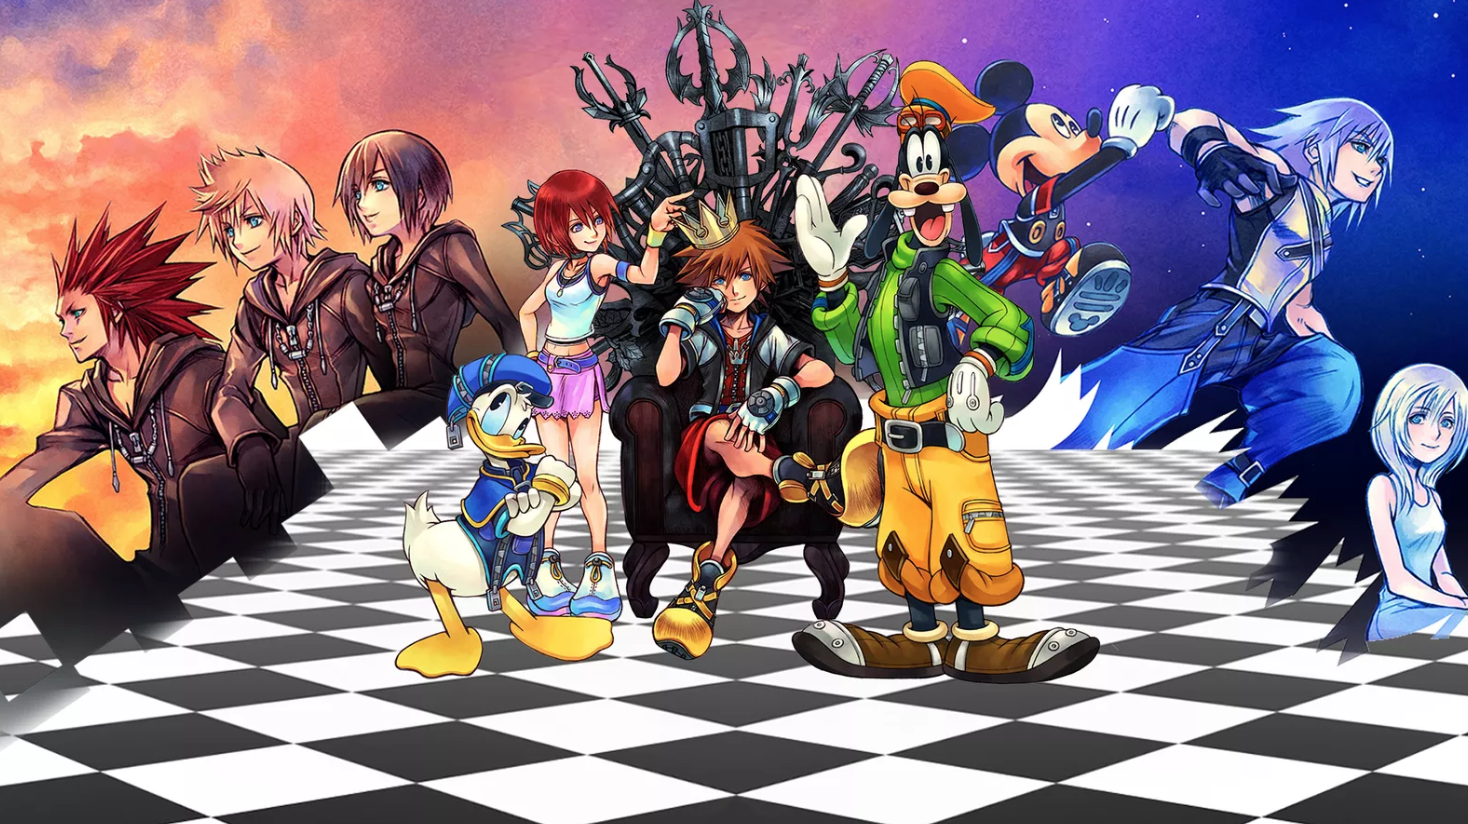 My Love For The Kingdom Hearts Series Is Well Known If You Follow Me On Any Form Of Social Media To Say That I Adore This Series Is An Understatement